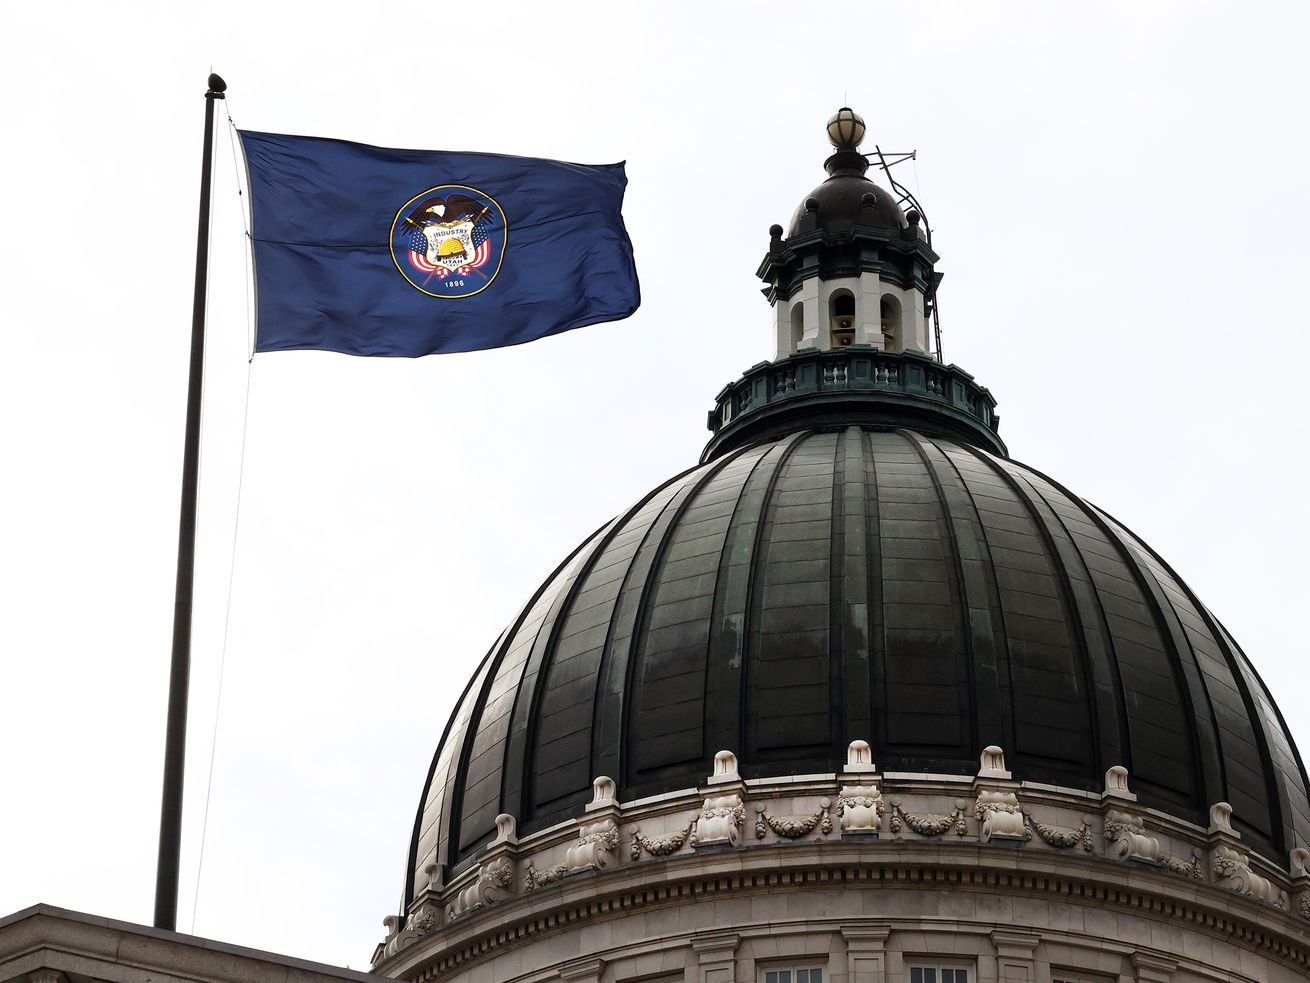 Talk of new state flag design for Utah raises concern from some lawmakers